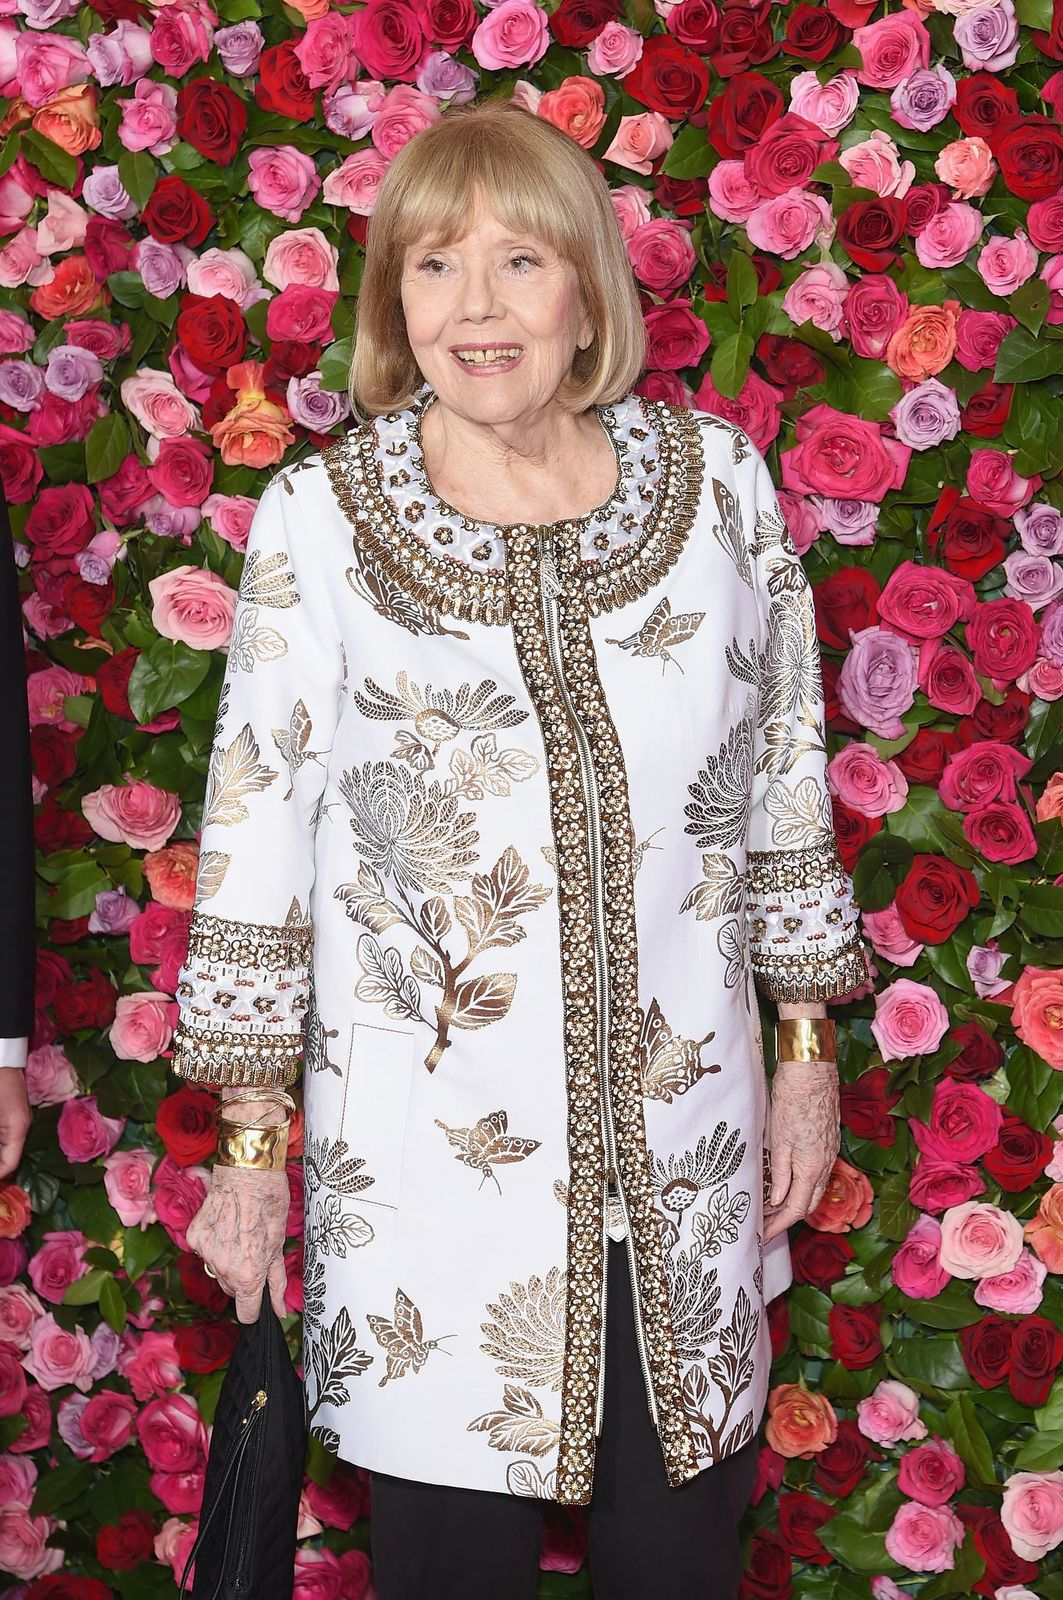 Diana Rigg au Radio City Music Hall le 10 juin 2018 à New York. | Photo : Getty Images